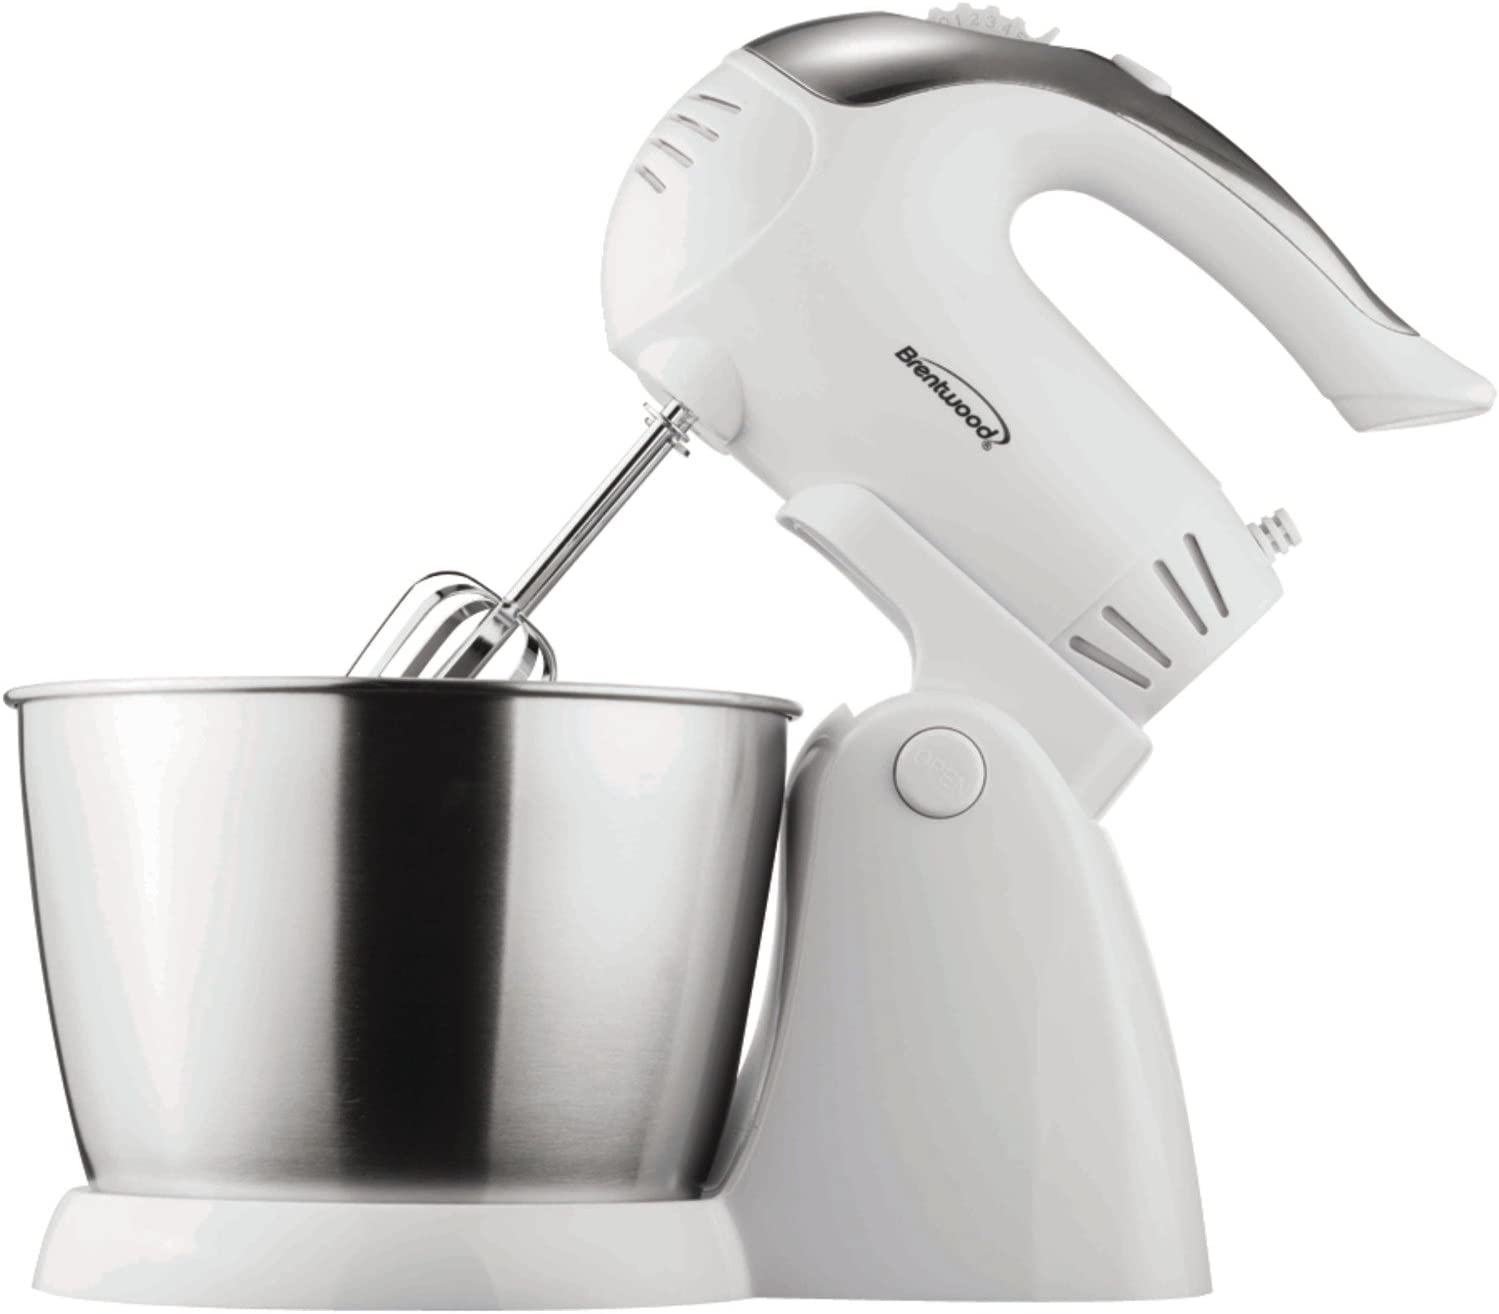 Brentwood SM-1152 Stand Mixer, 5-Speed + Turbo, White